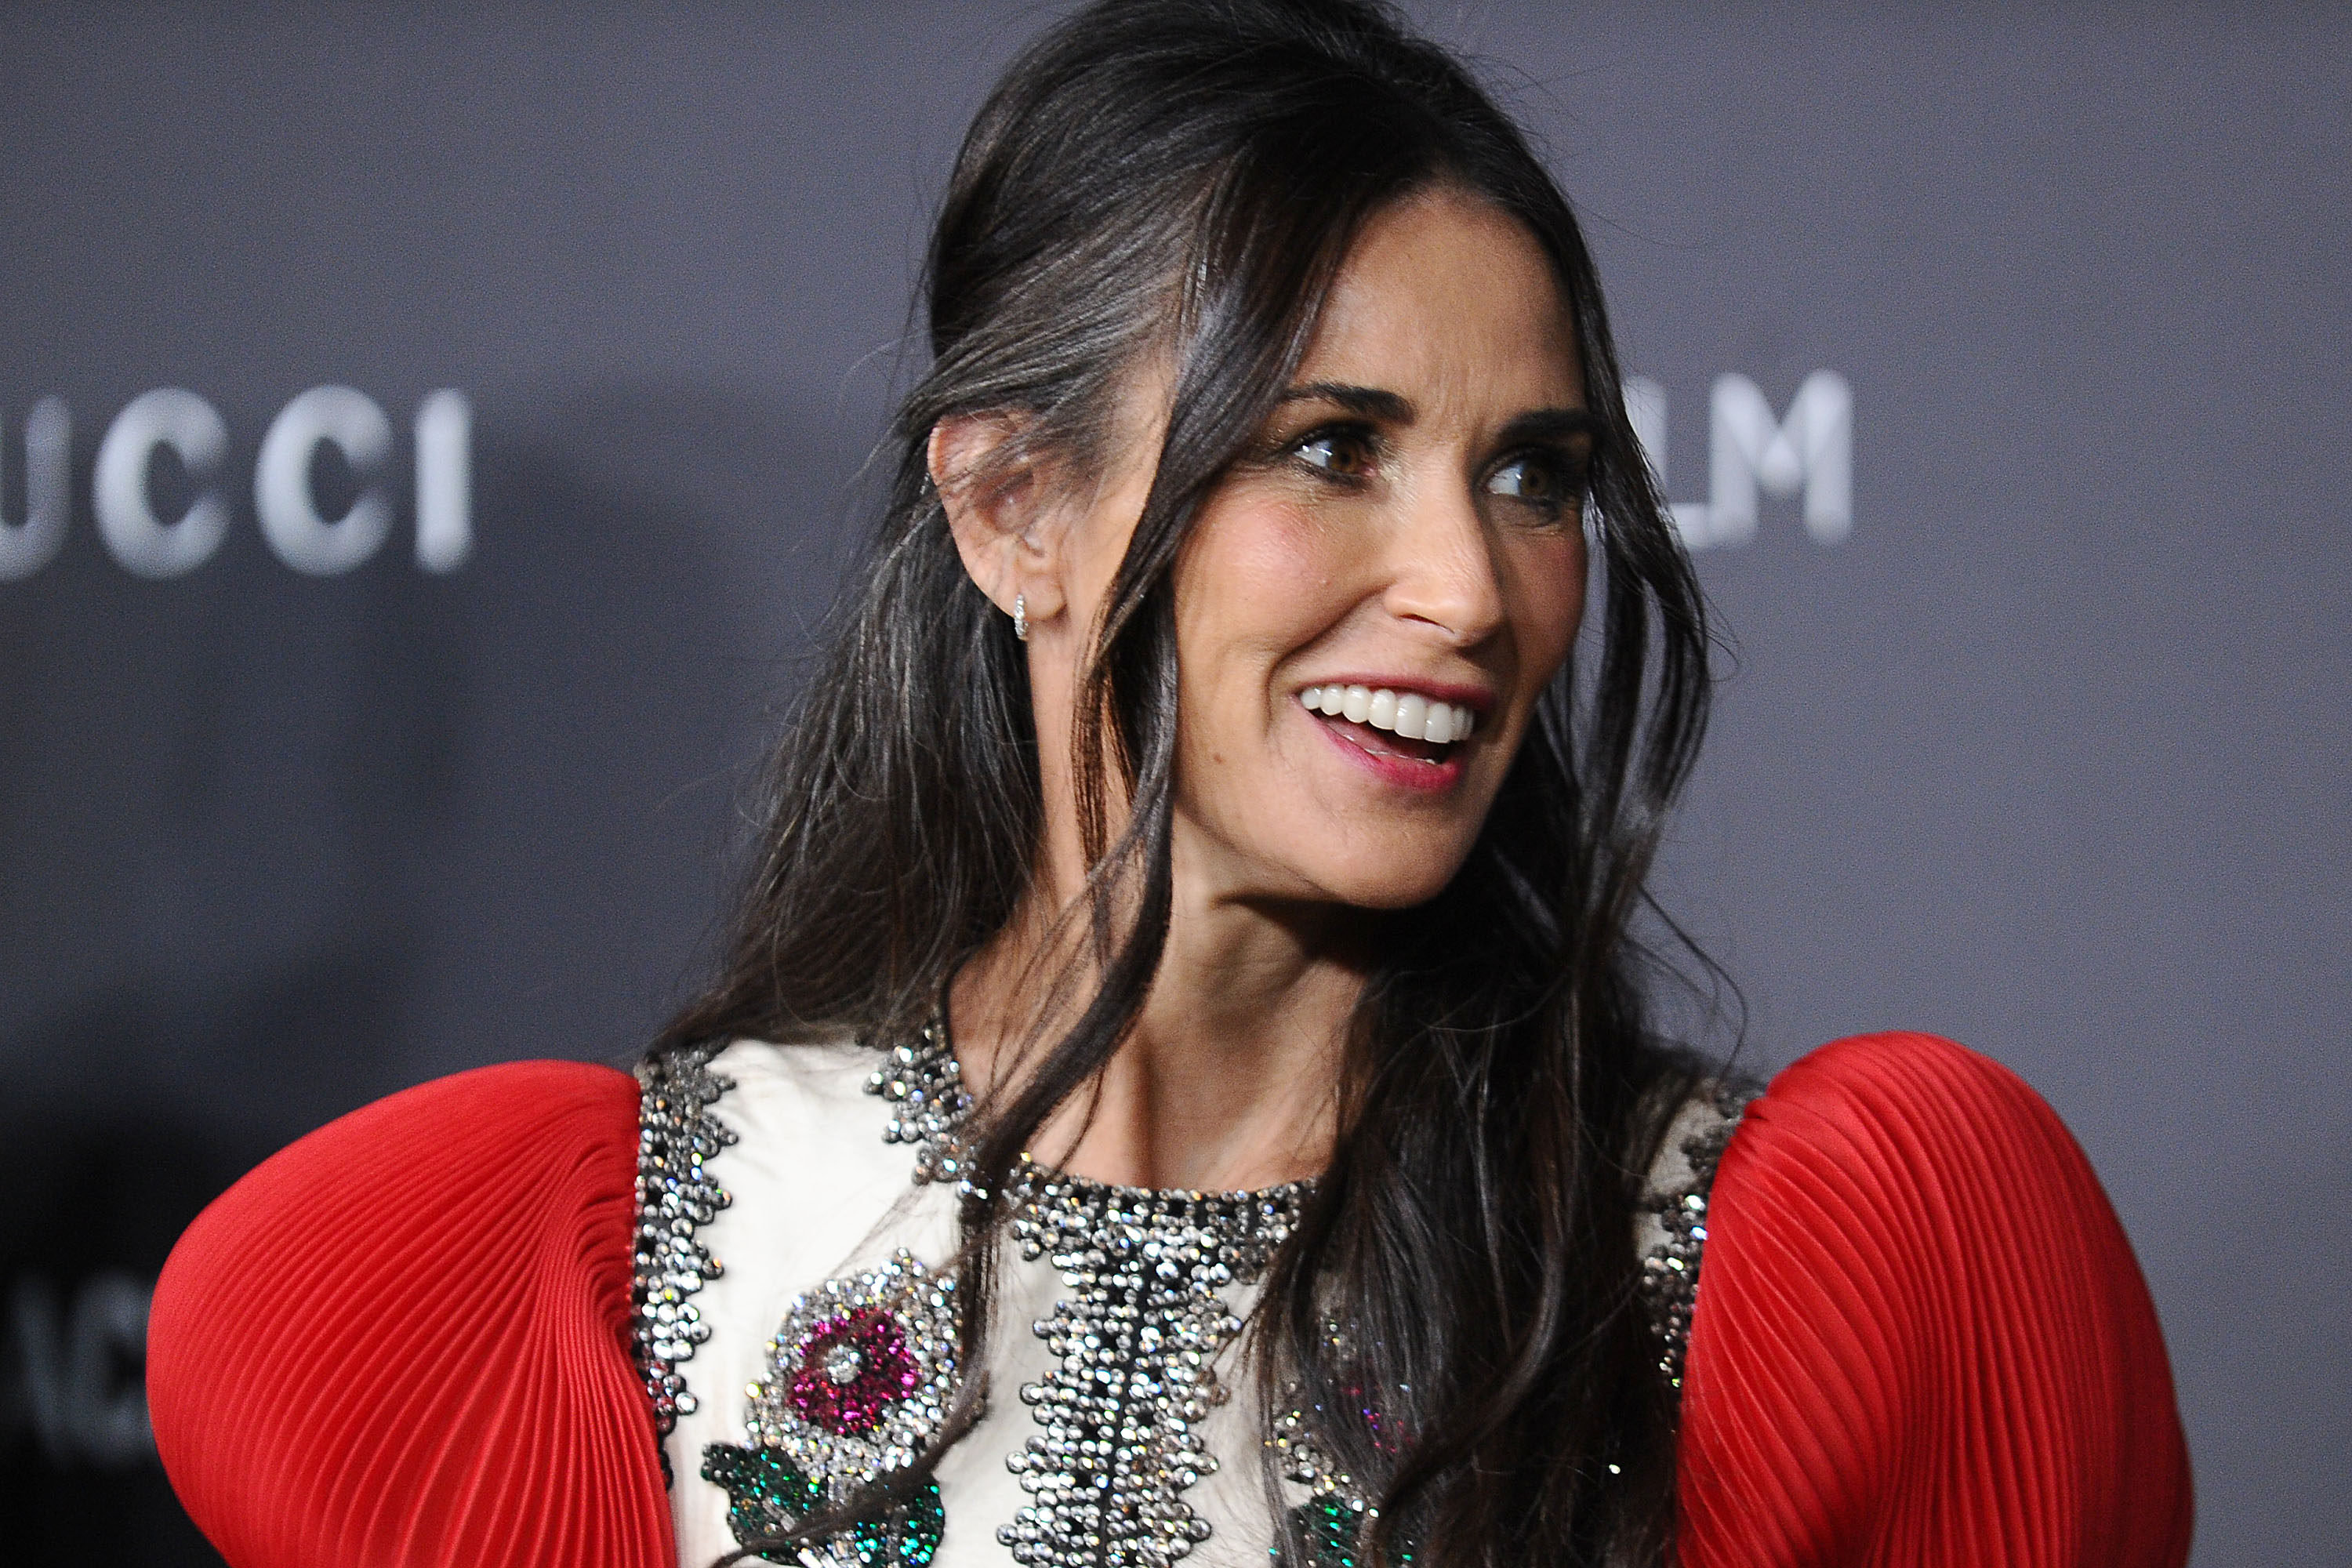 Demi Moore Confirms She Is Missing Her Two Front Teeth ...